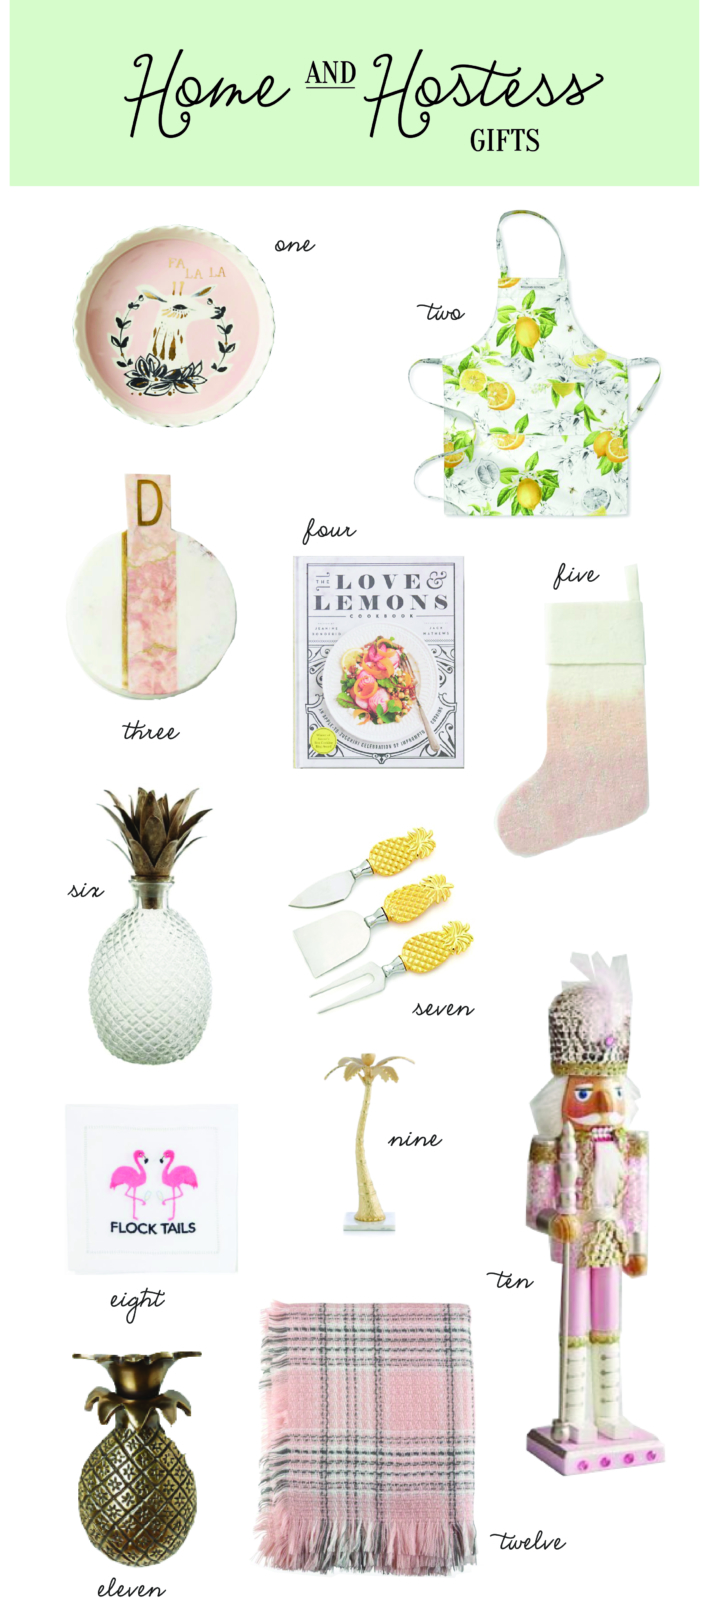 Palm Beach Lately Home and Hostess Gifts